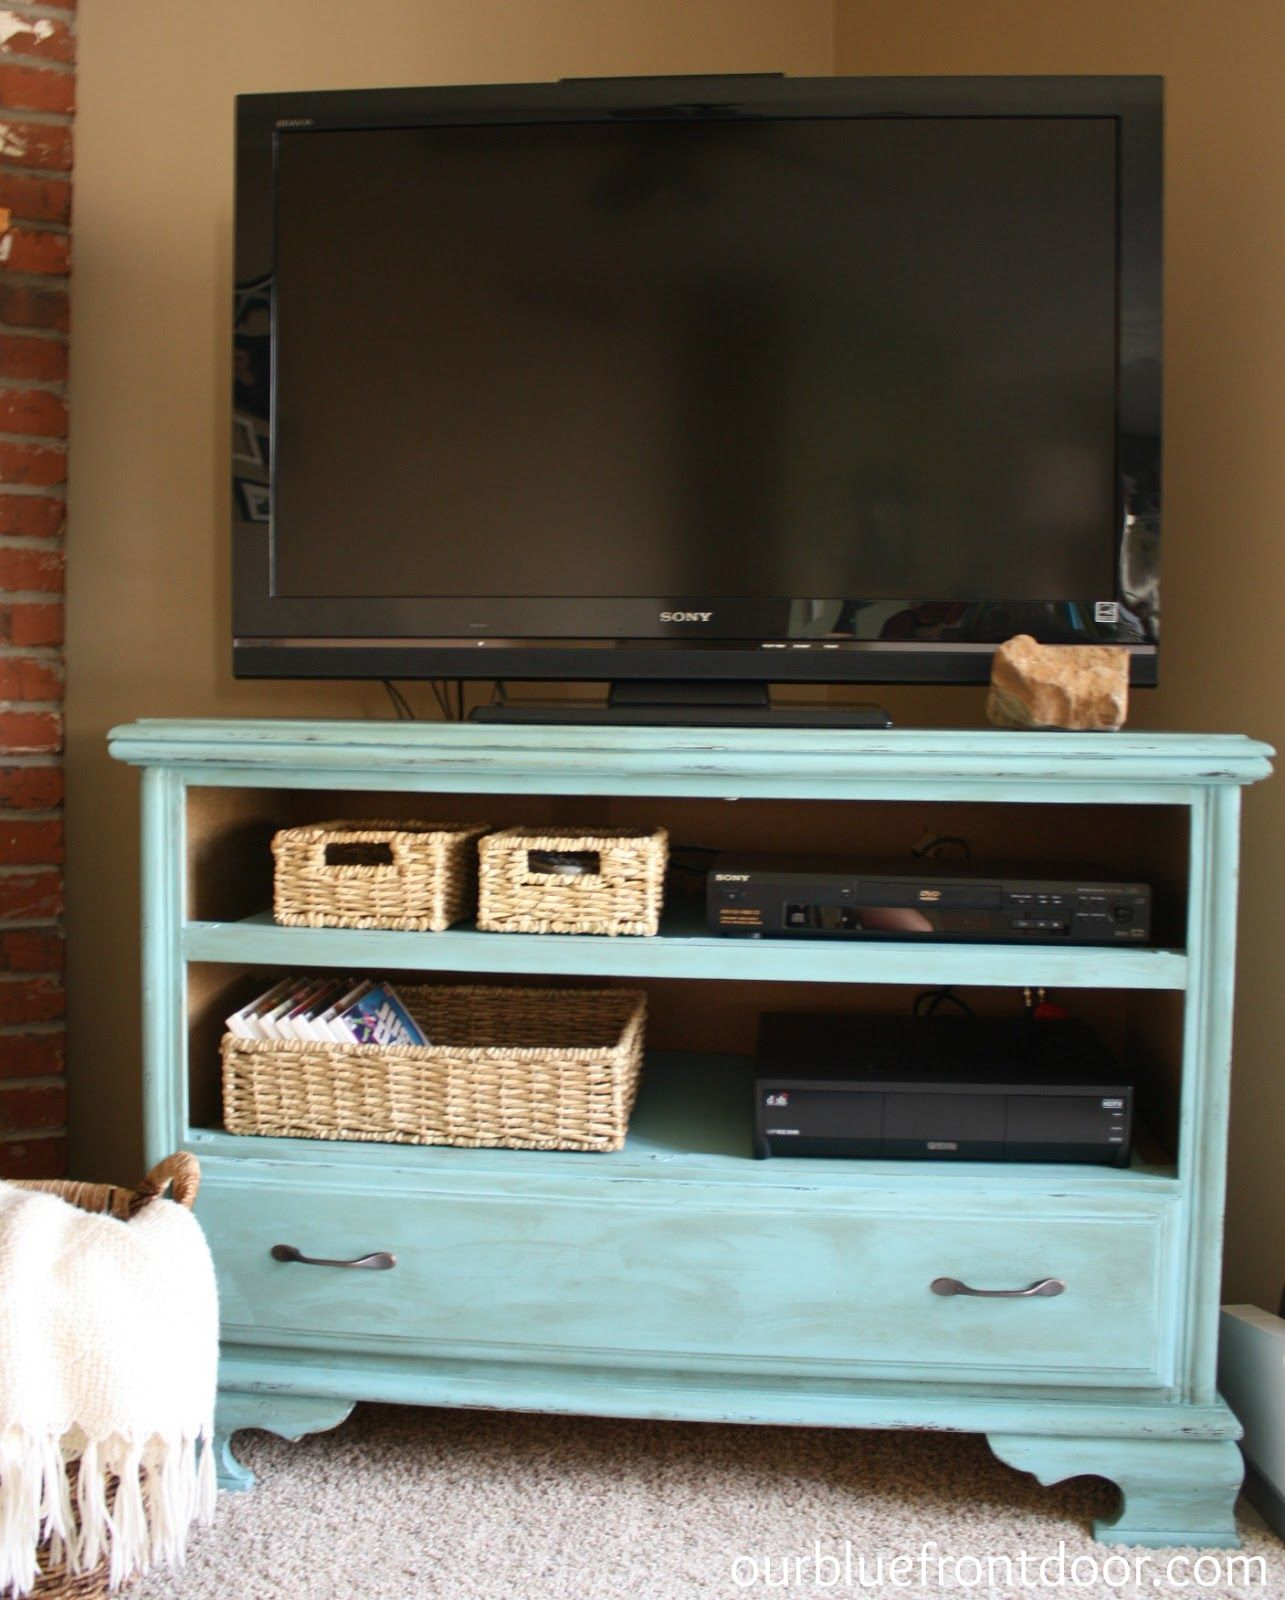 Garage Sale Dresser Turned Into A Tv Stand Genius Furniture